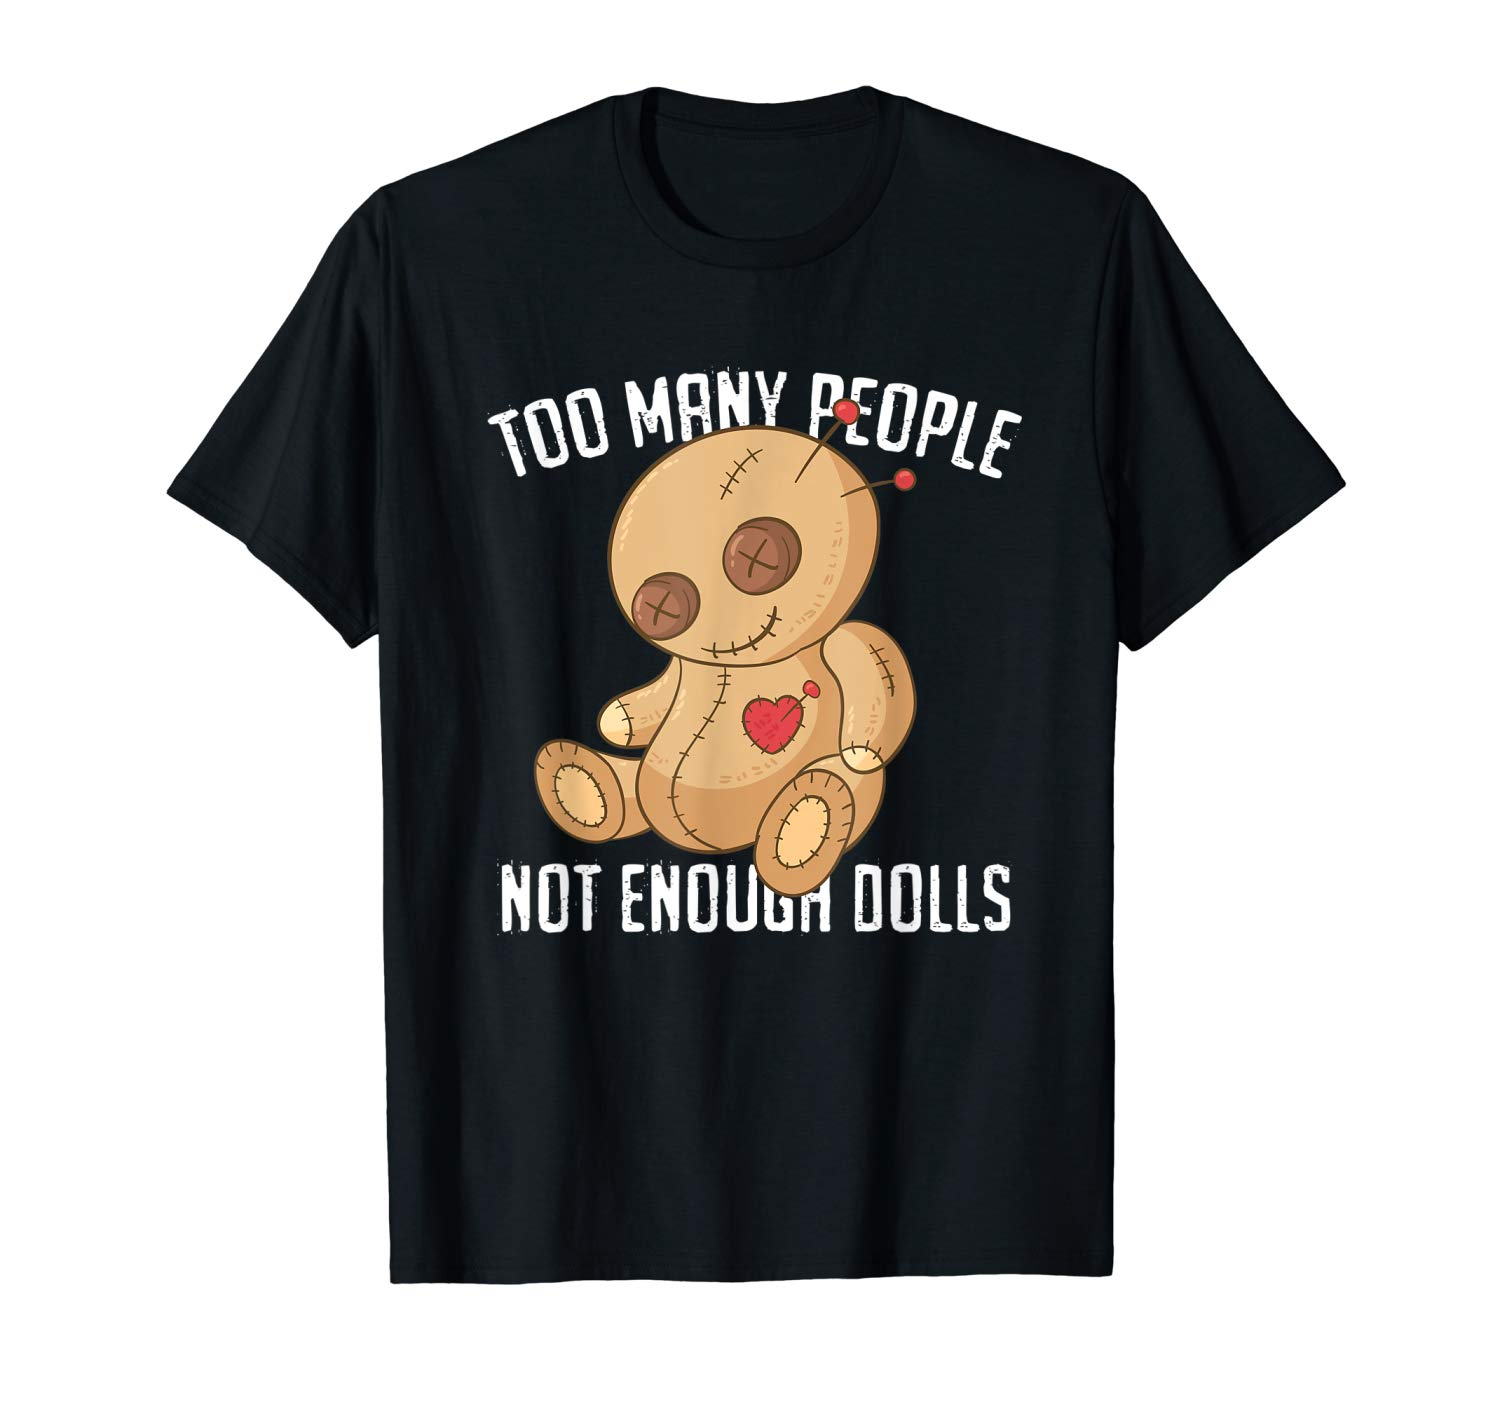 Funny Halloween Shirts Gifts For Girls Voodoo Doll T Shirt